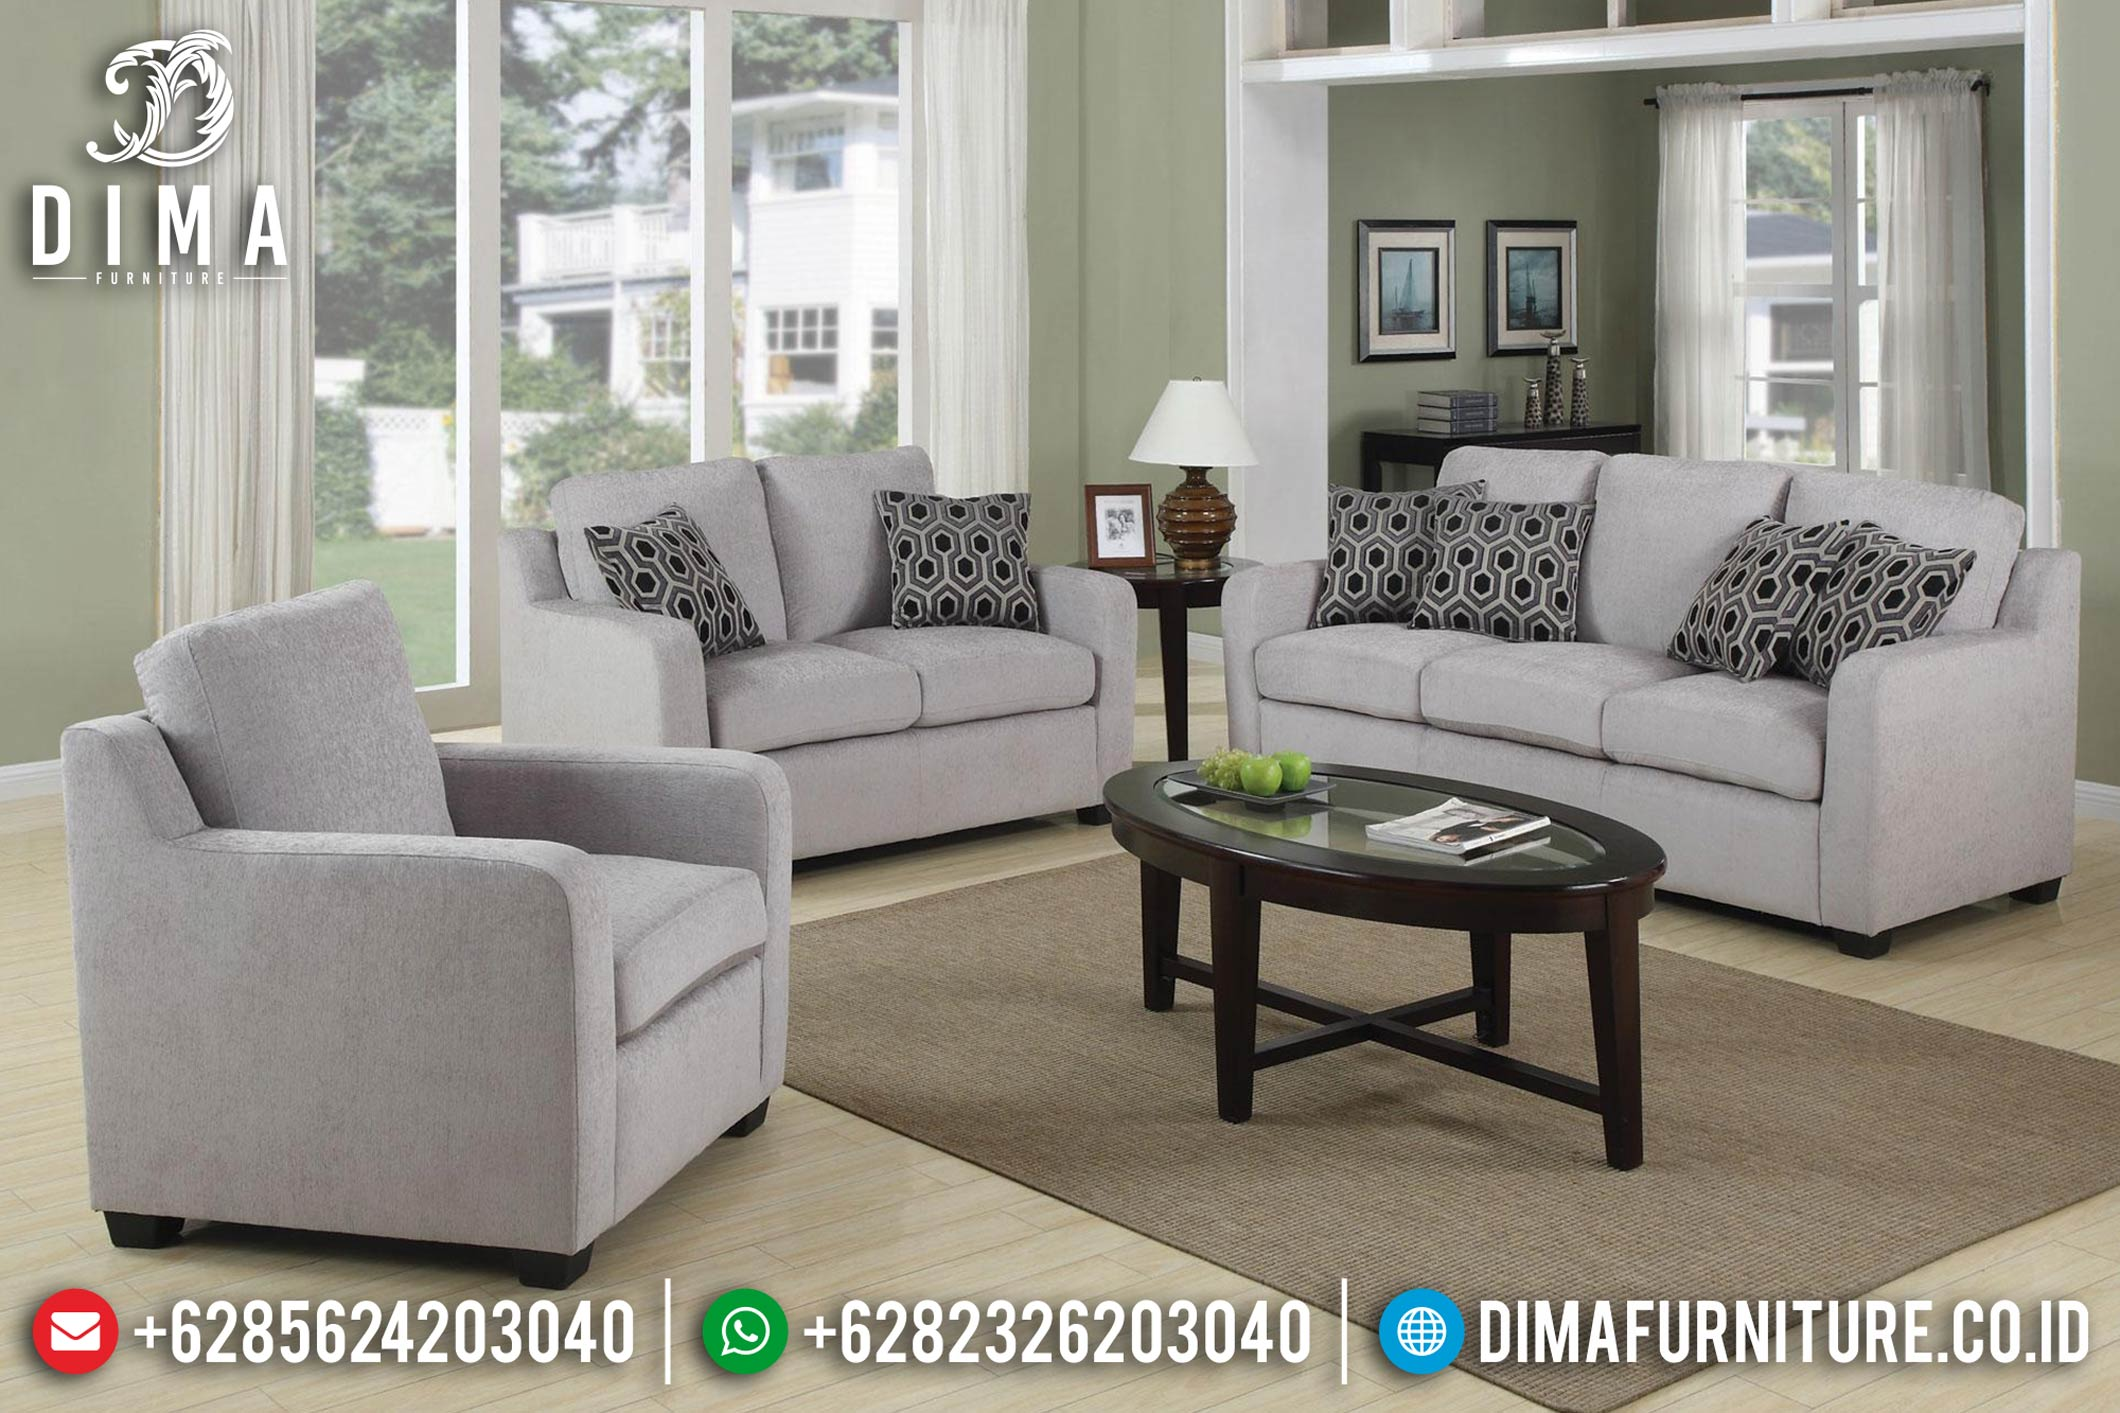 Furniture Indonesia Sofa Tamu Minimalis Jepara Traditional Style ST-0628